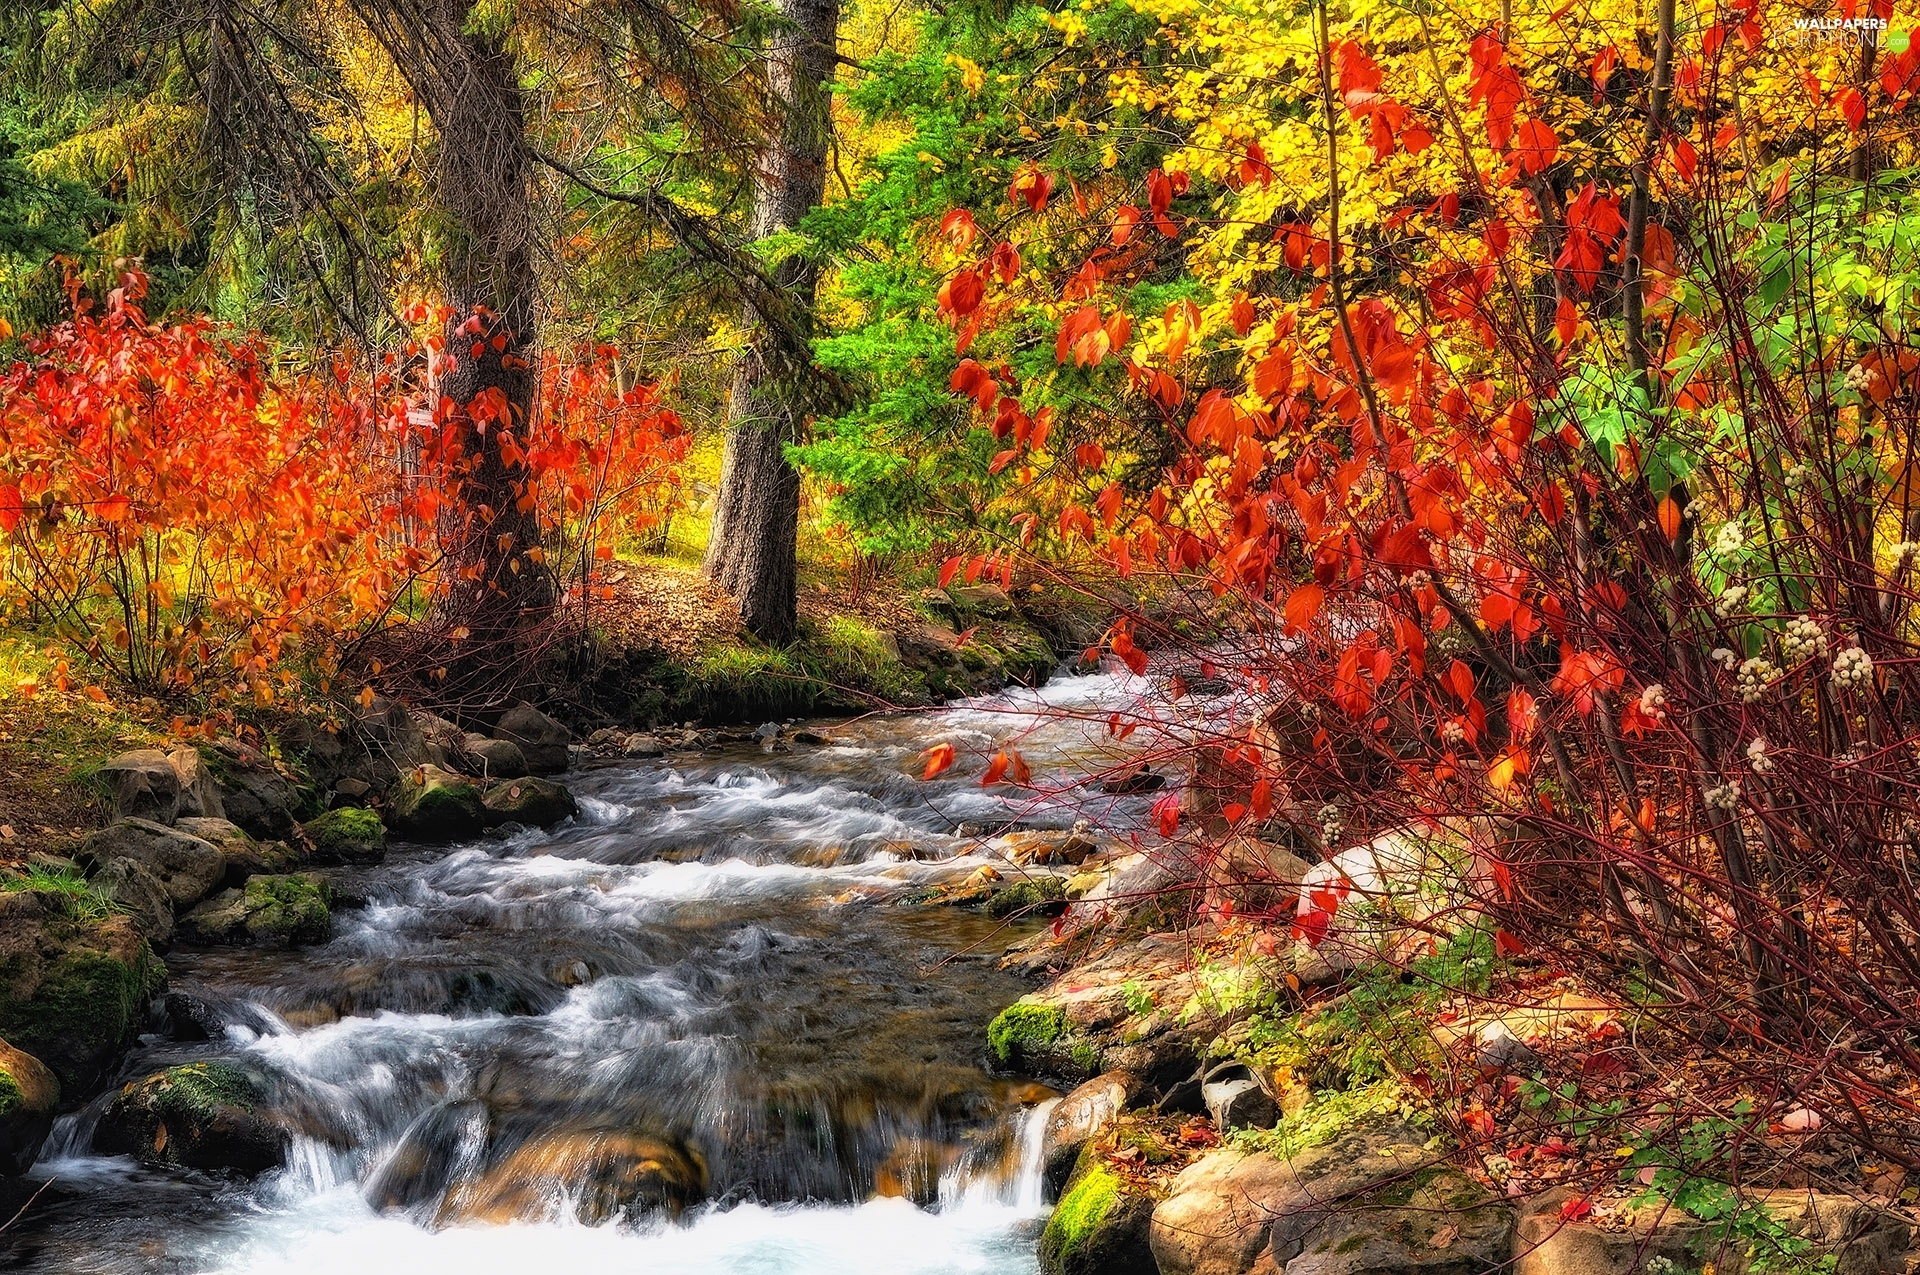 trees, forest, Bush, autumn, viewes, River